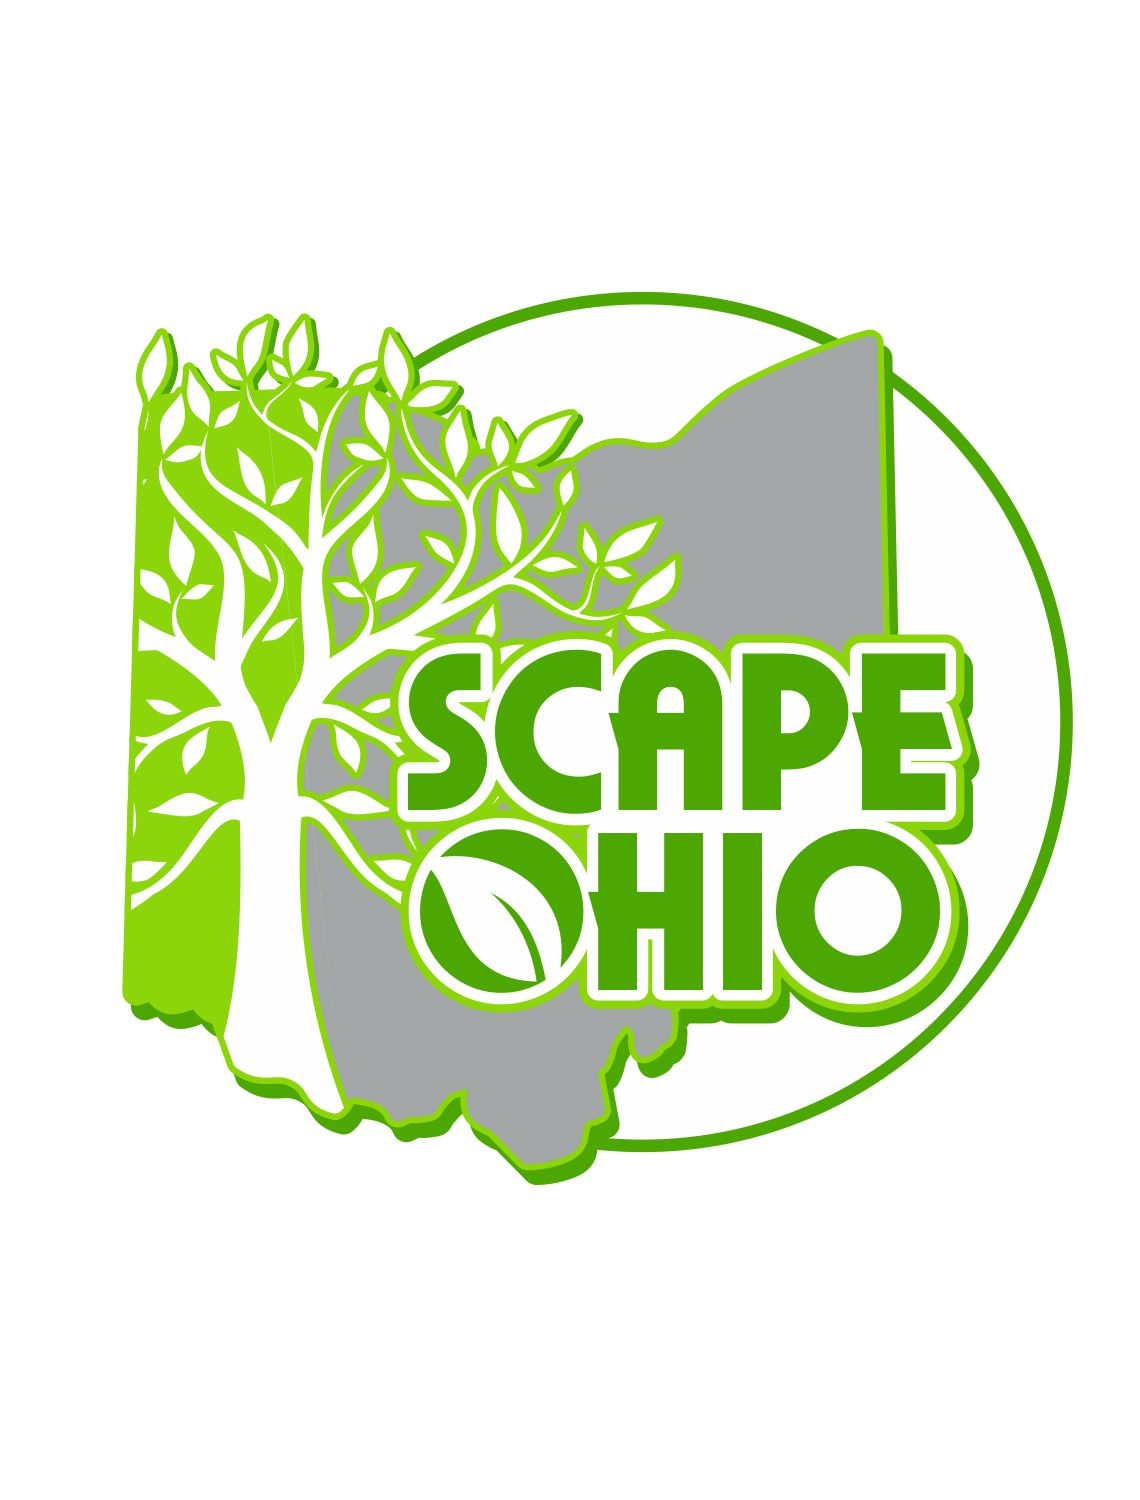 About Scape Ohio Landscaping